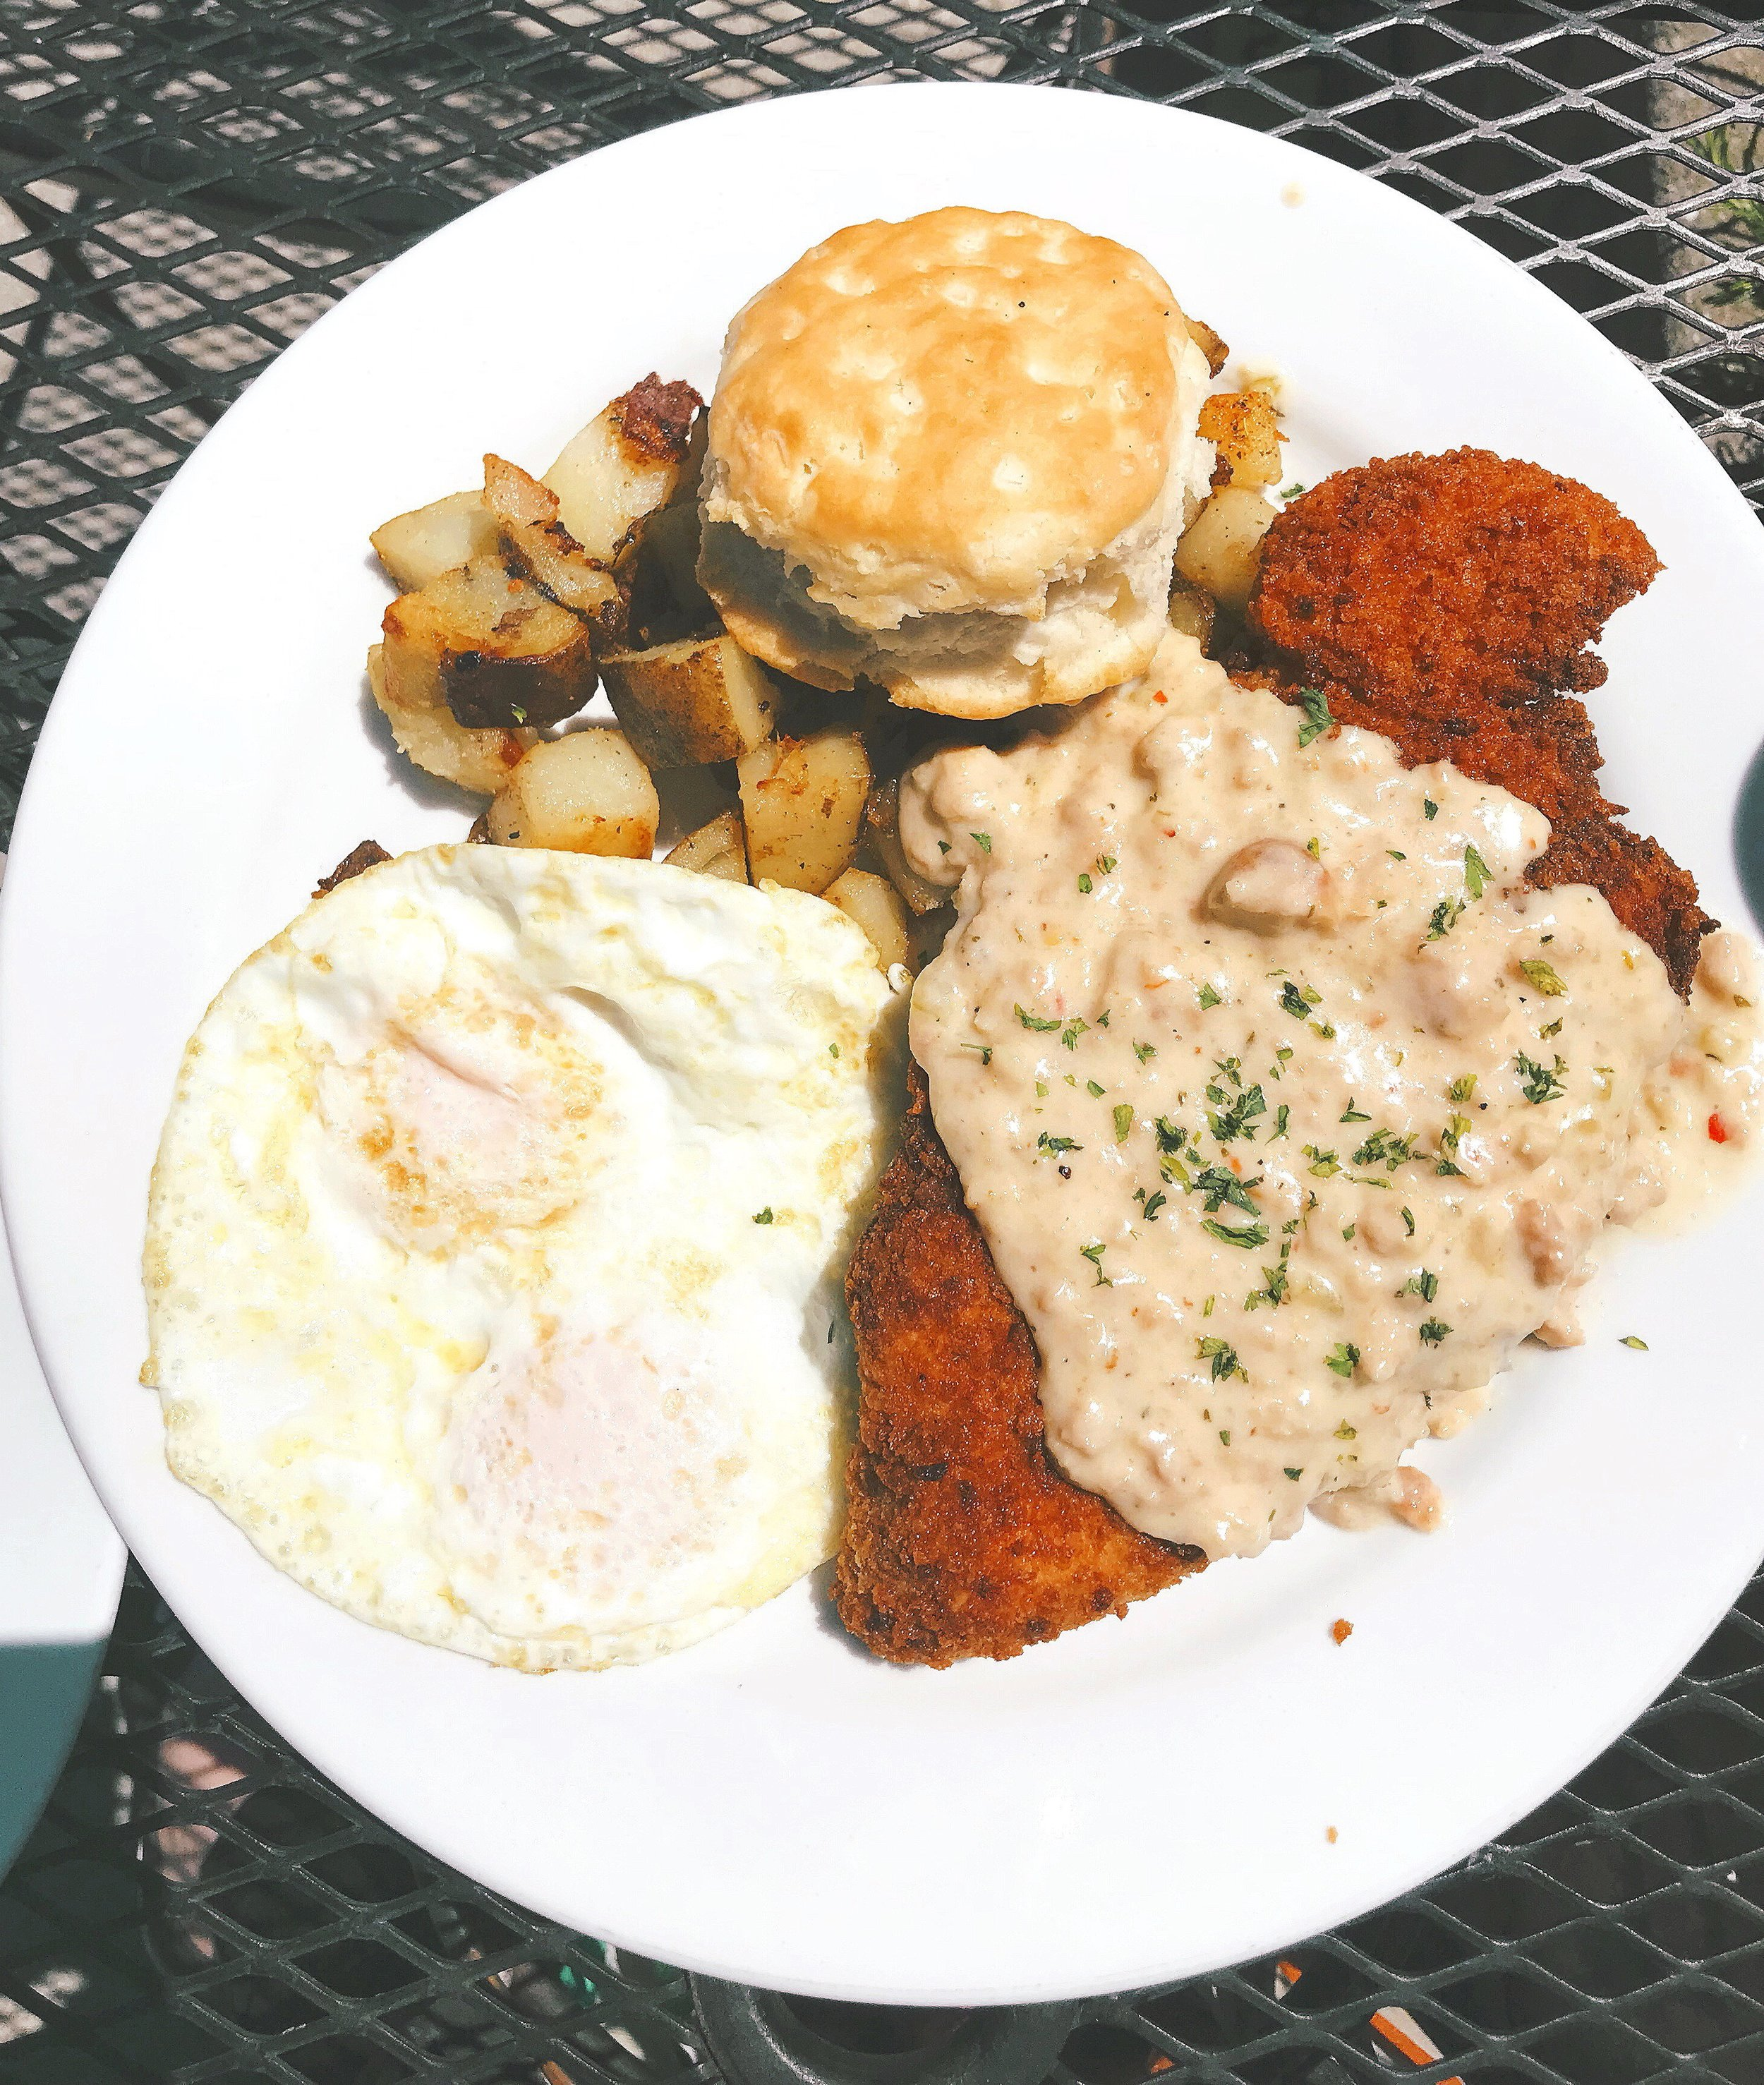 Alec's Go-to Order: Fried Chicken with 2 eggs any style, Gravy, and a Biscuit